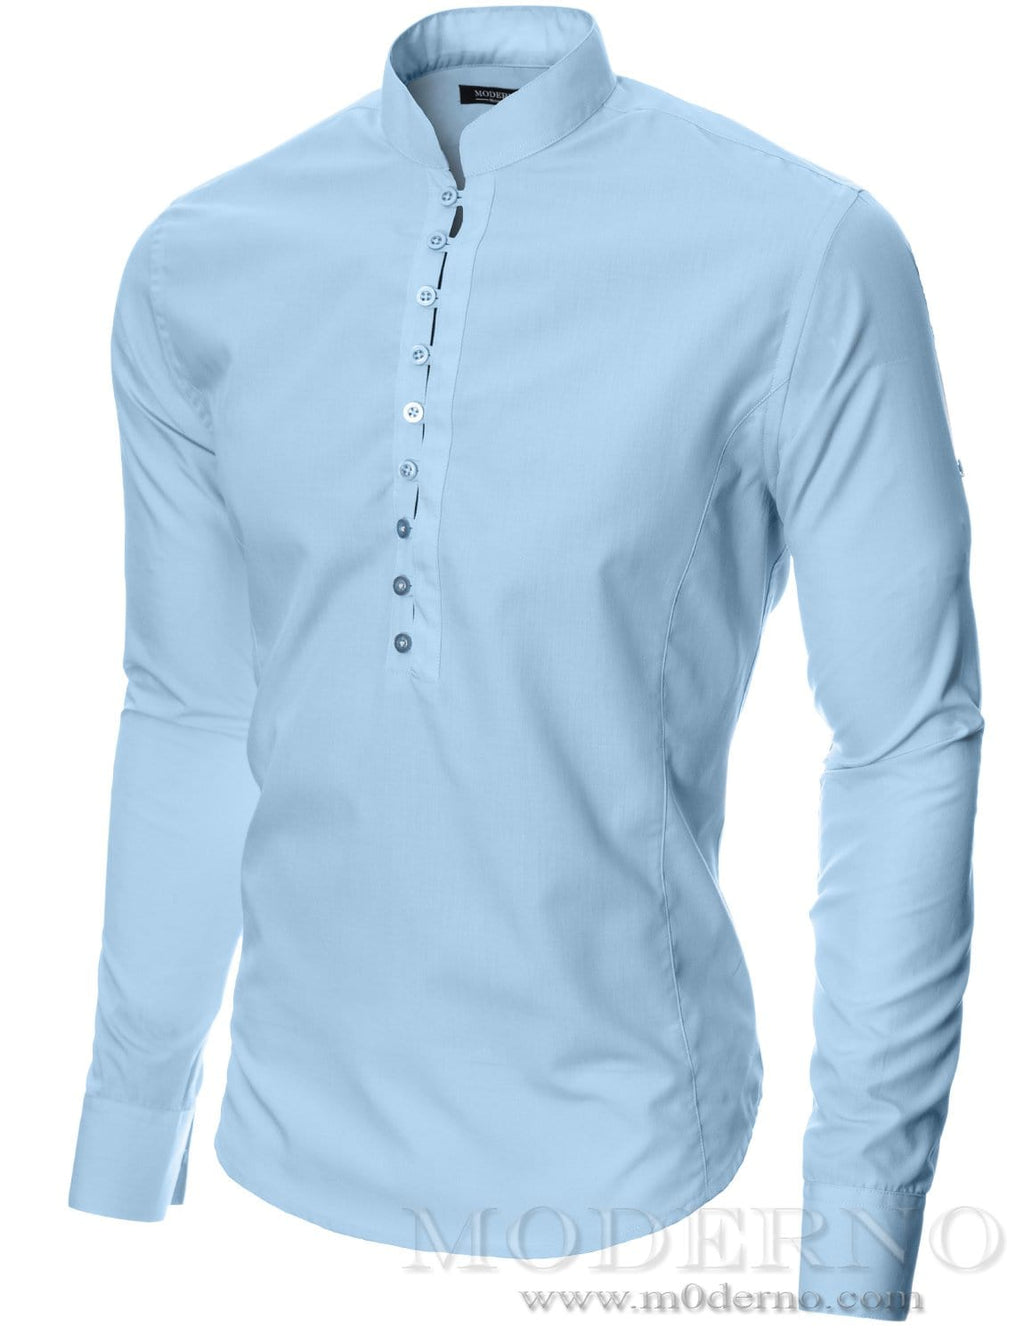 Mens button-down shirt sky (MOD1431LS) - MODERNO